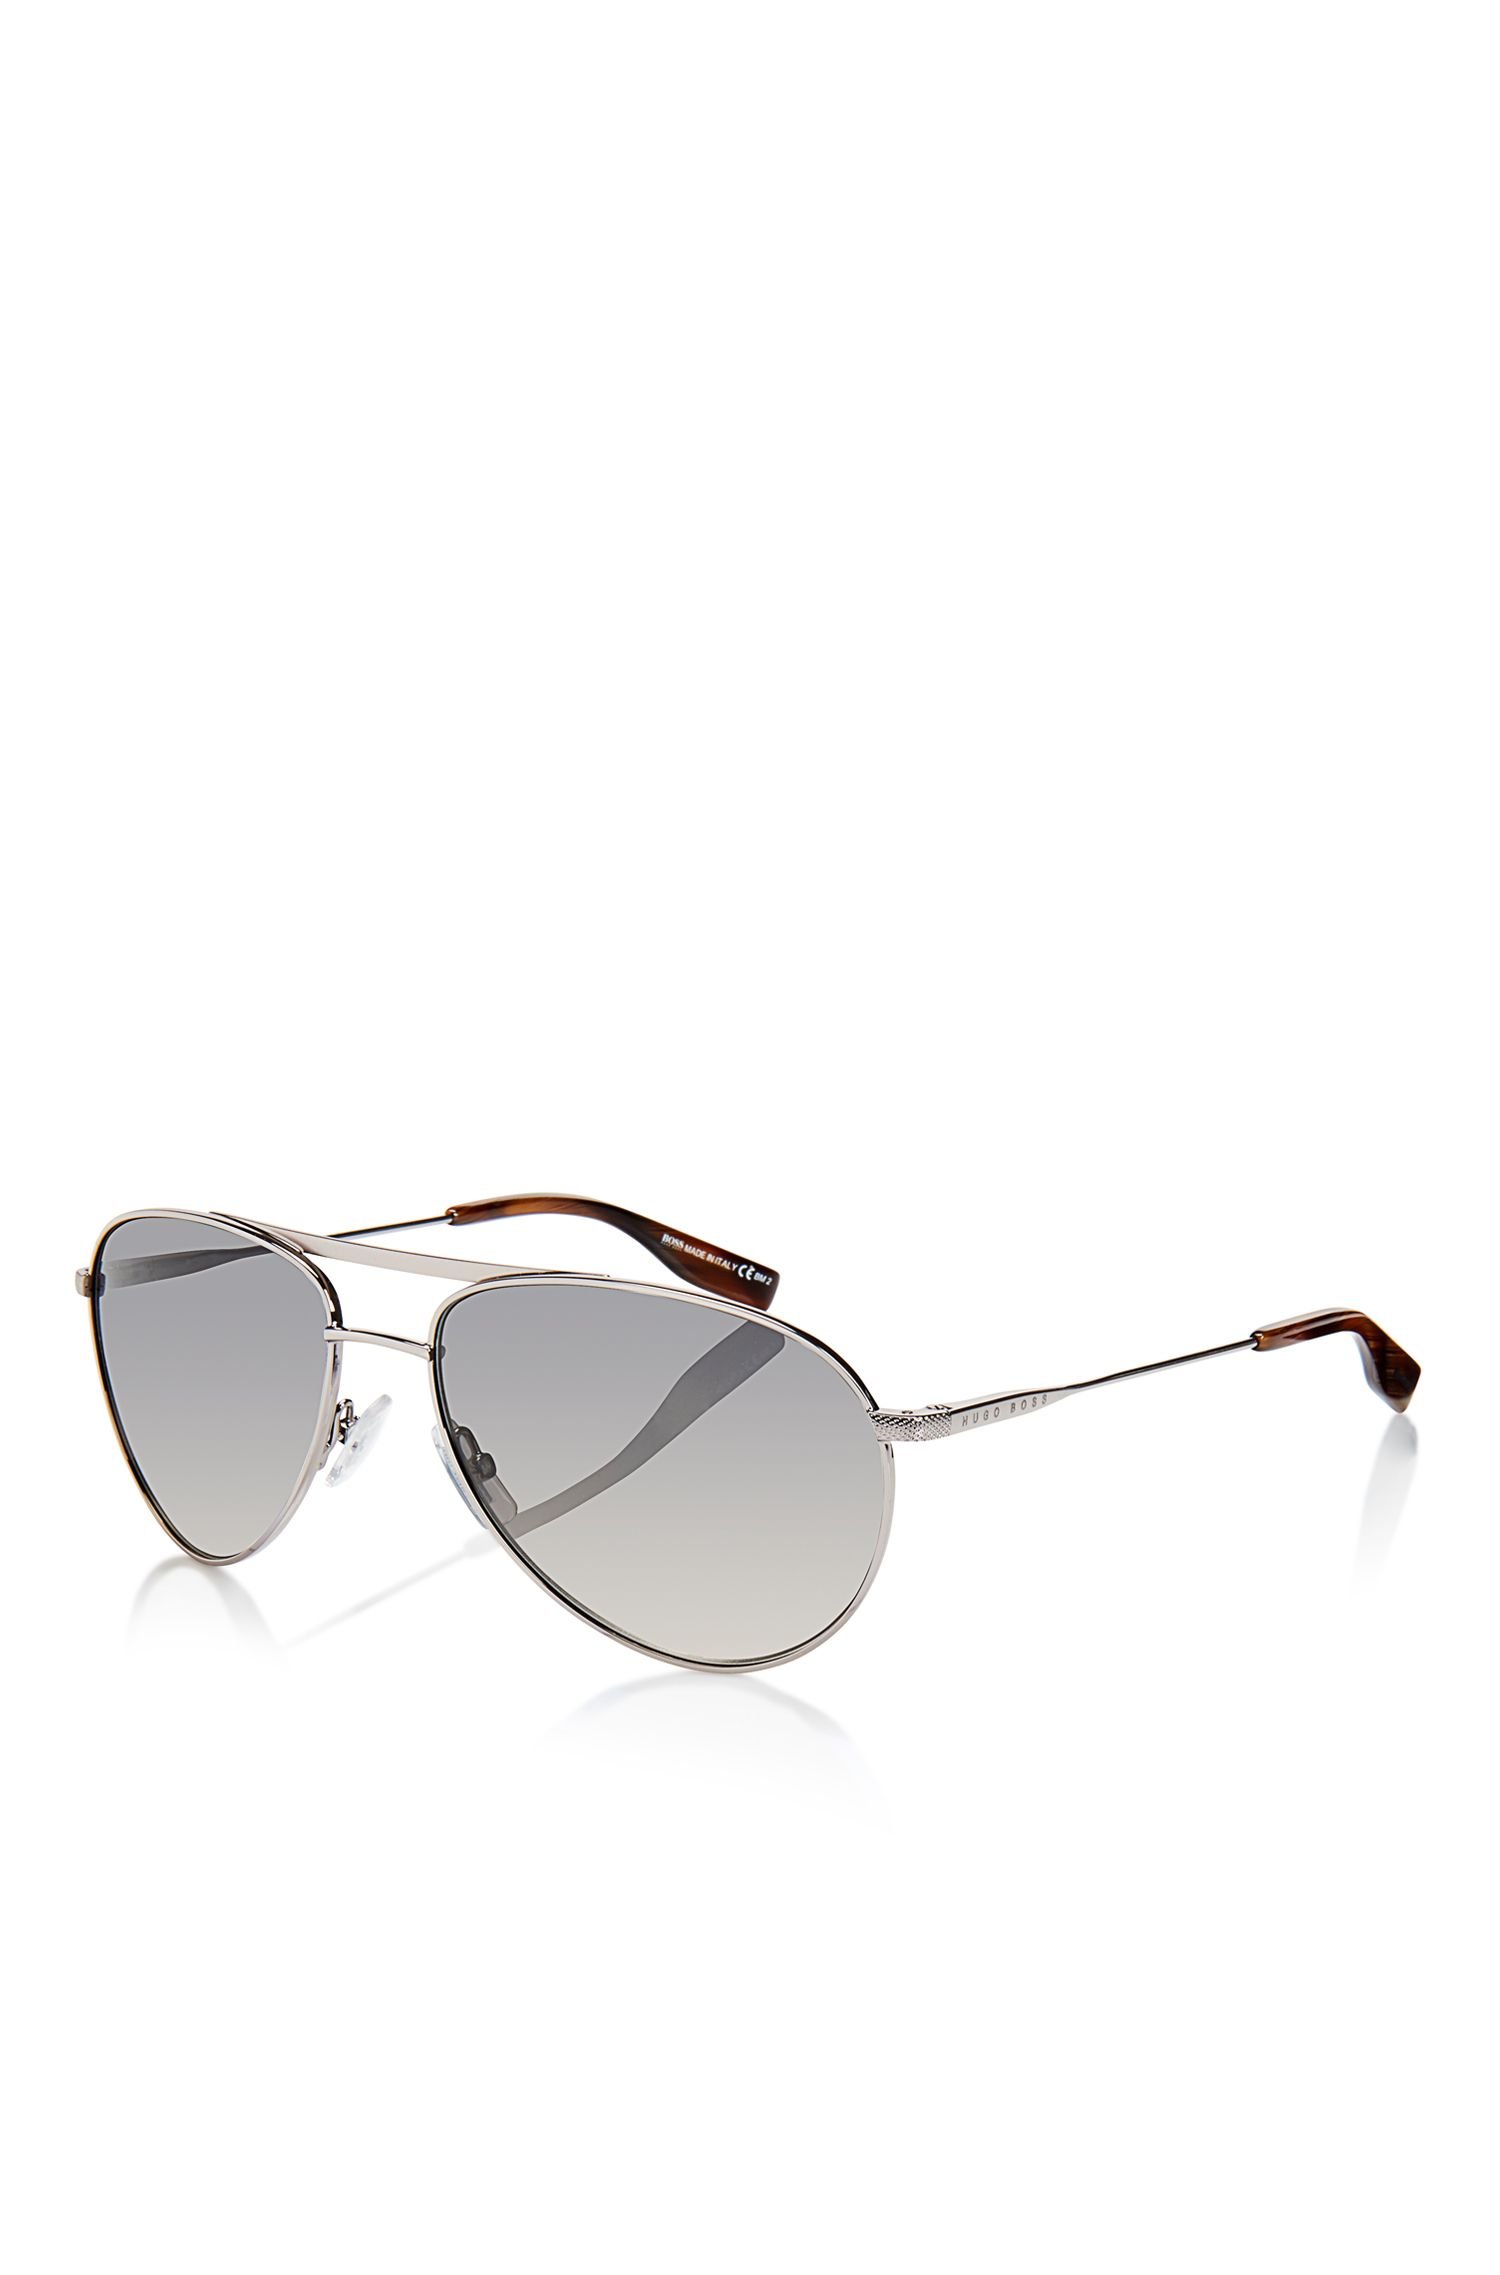 Grey Lens Flex Hinge Aviator Sunglasses | Sunglasses